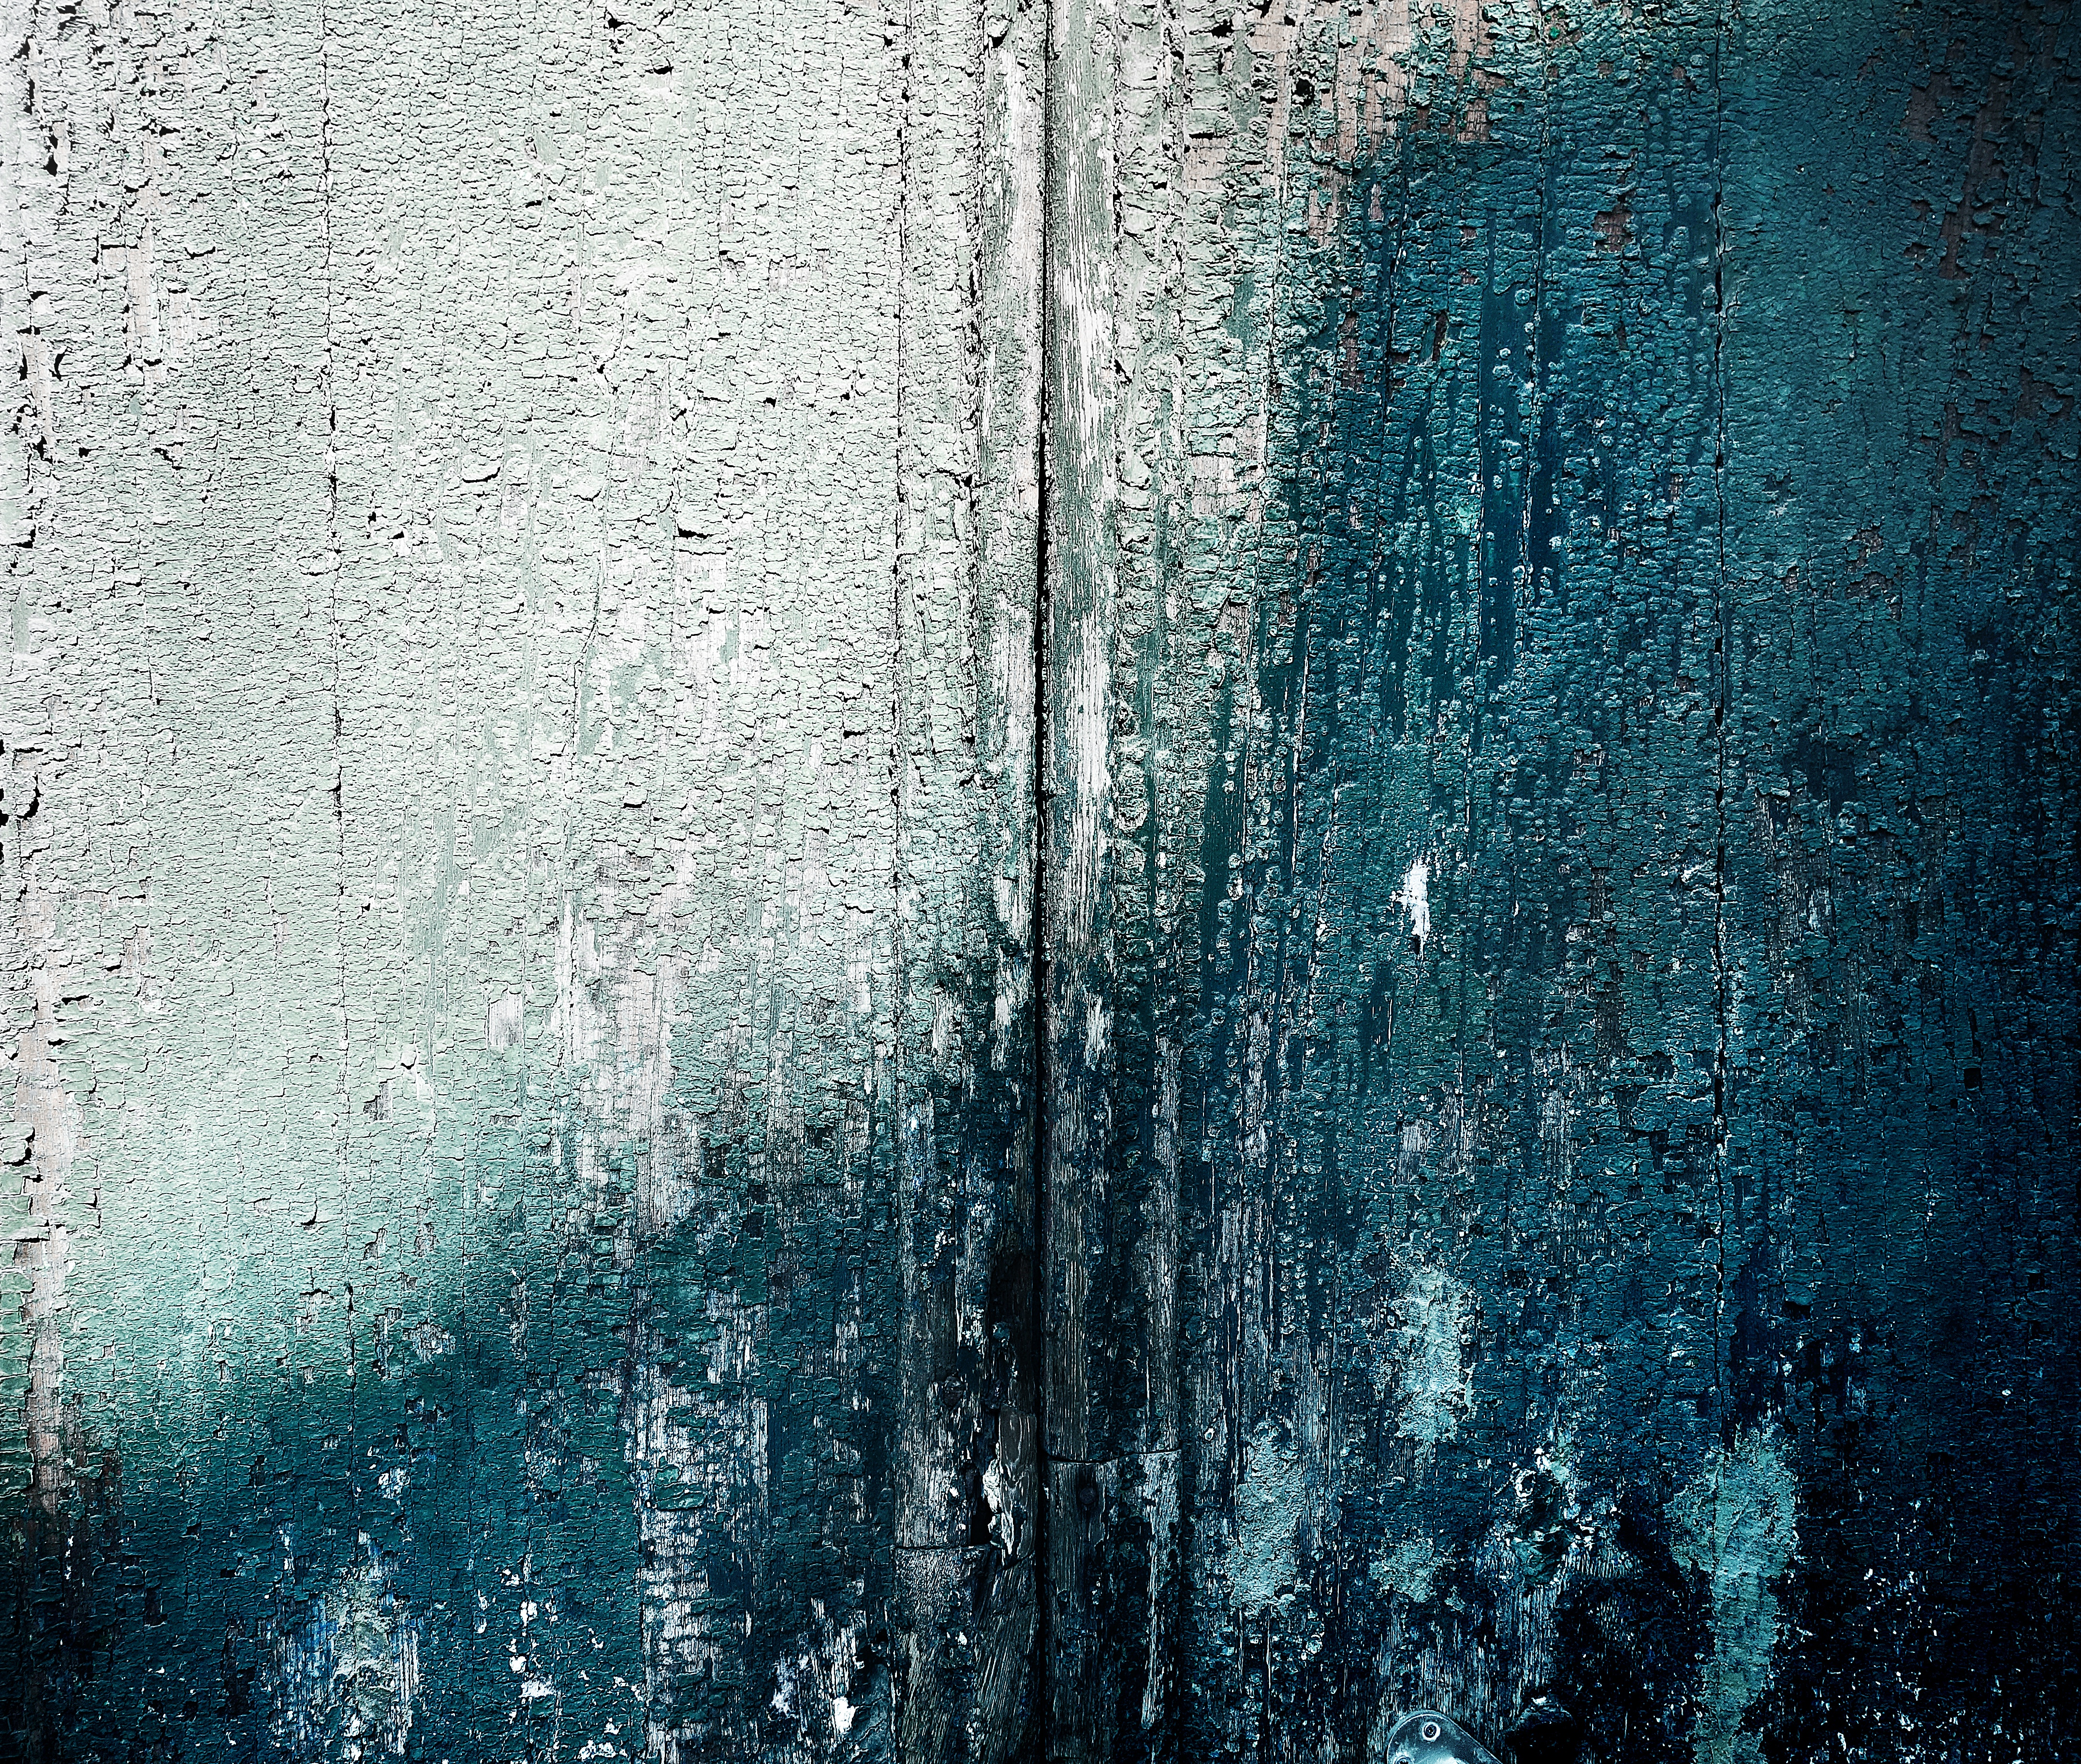 147303 free wallpaper 1080x1920 for phone, download images Texture, Textures, Paint, Wall, Irregularities, Shabby 1080x1920 for mobile